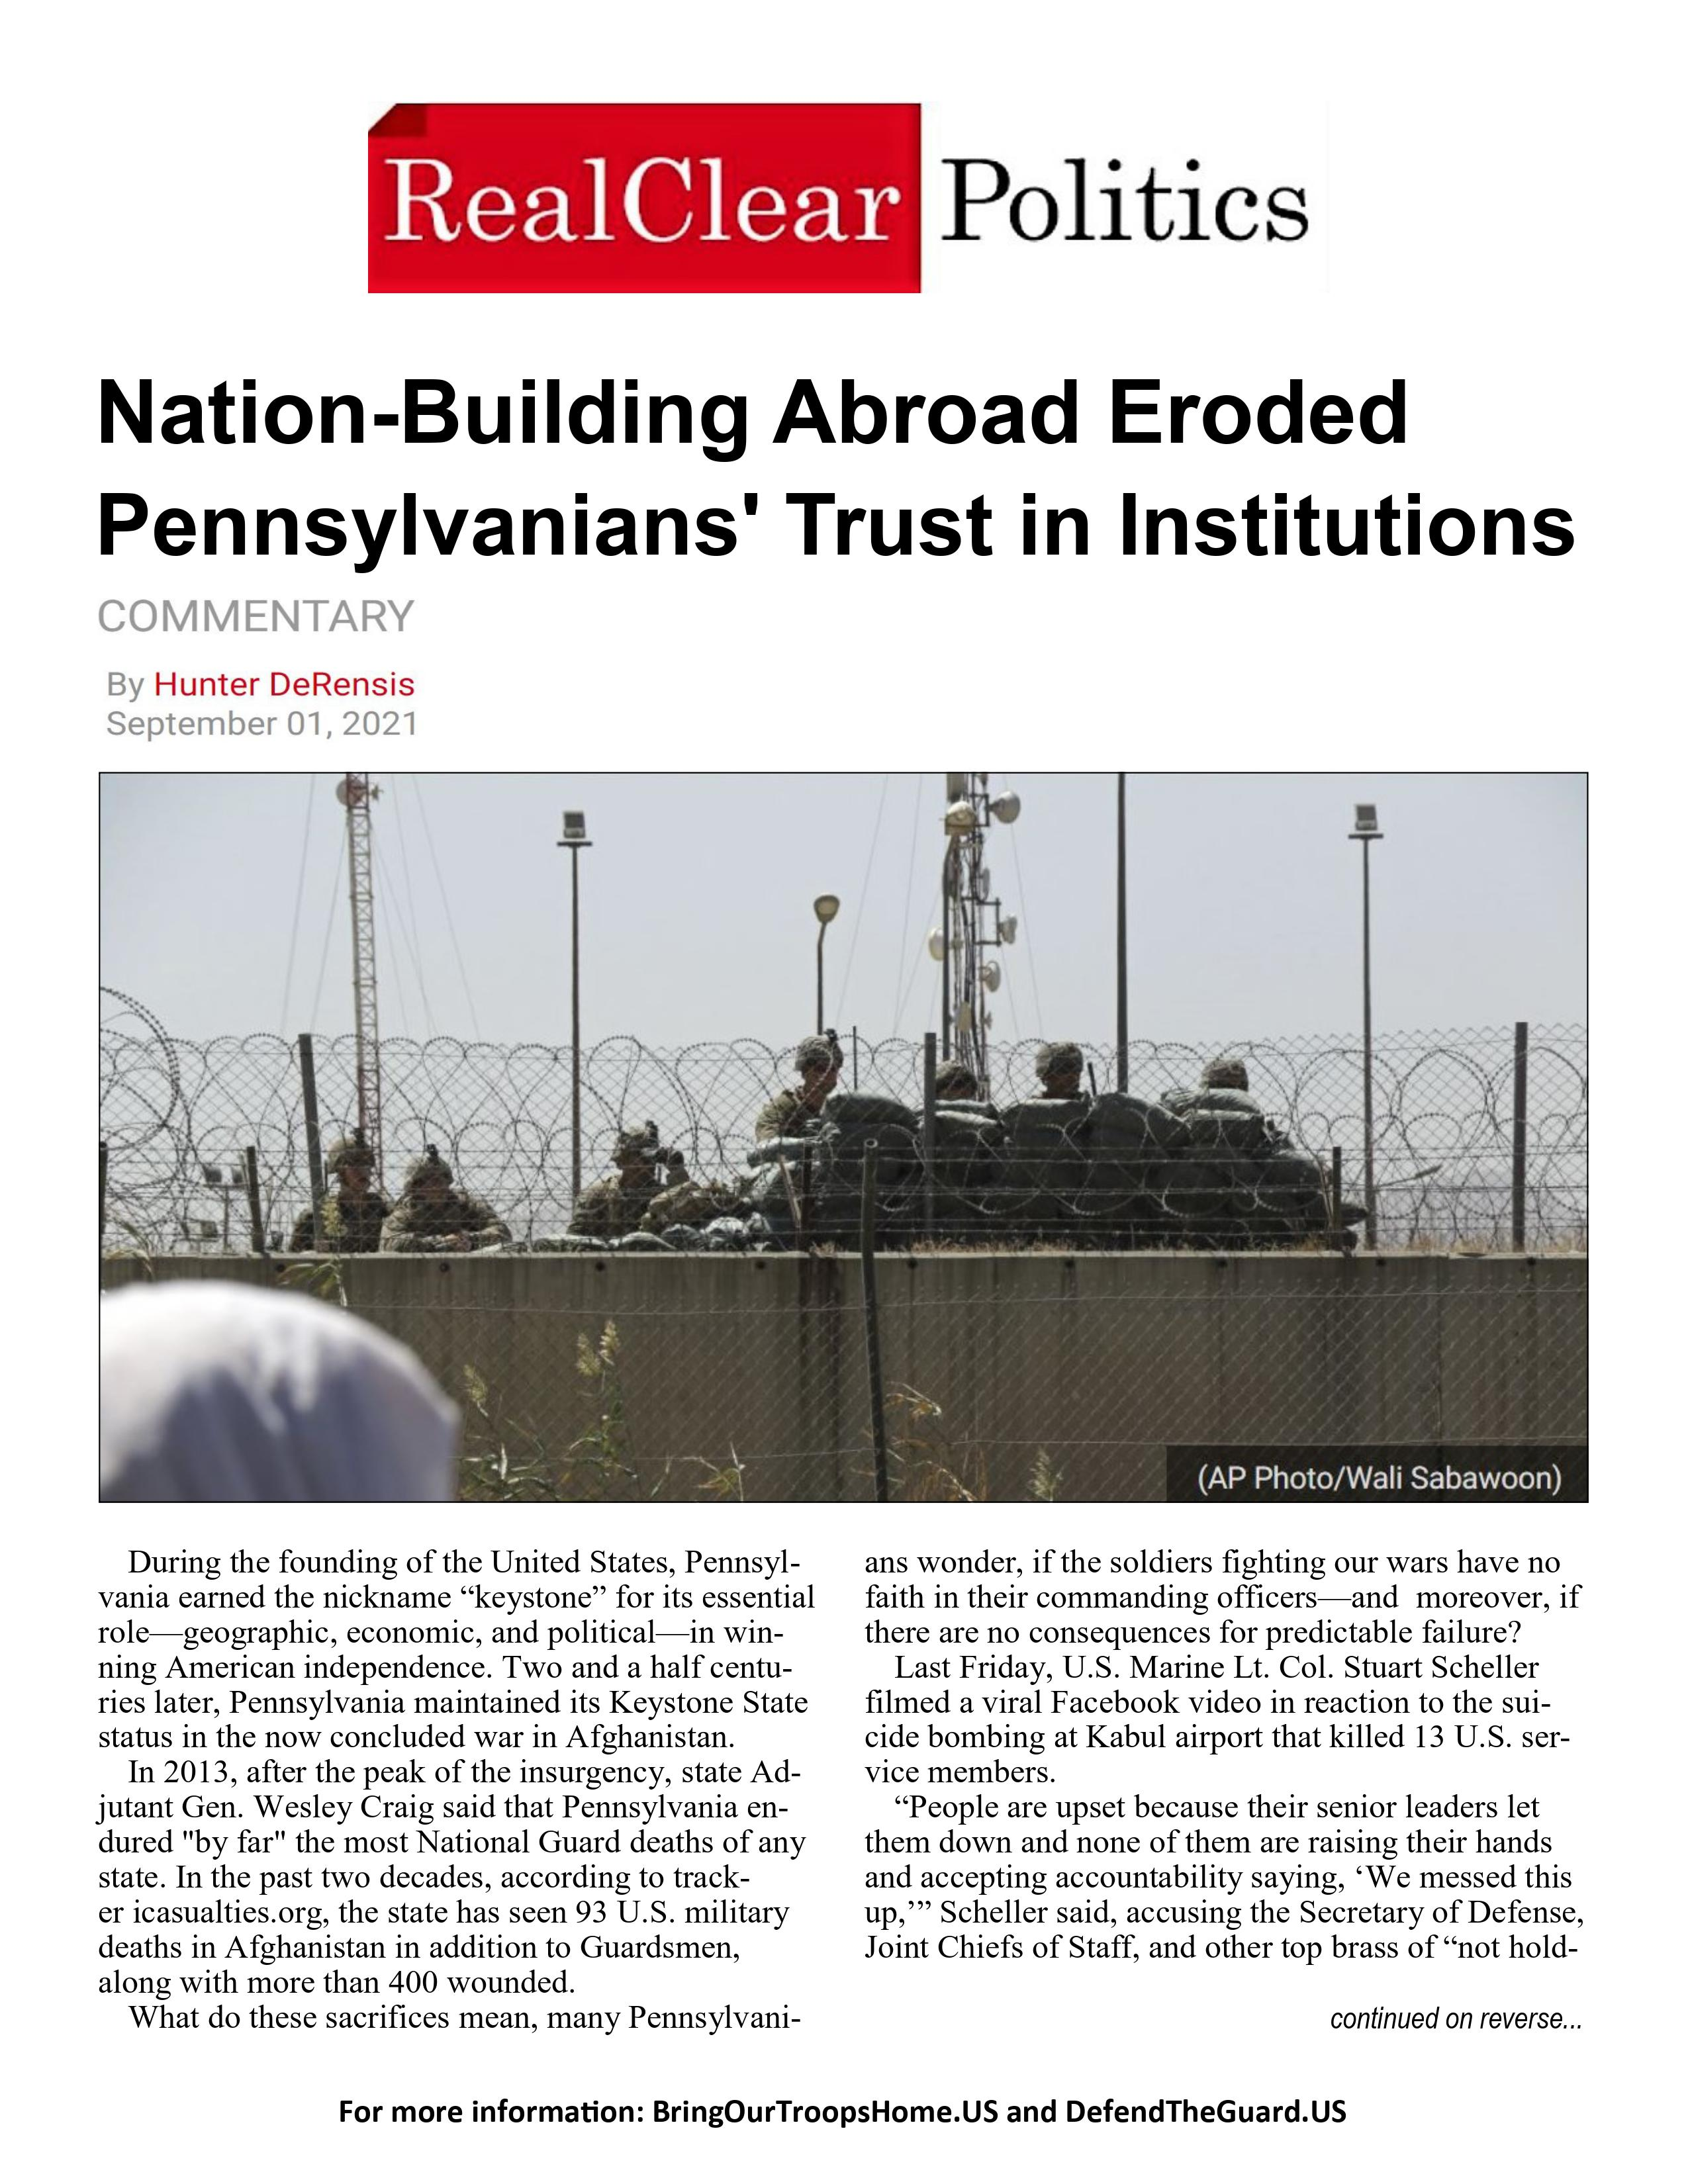 Nation-Building Abroad Eroded Pennsylvanians' Trust in Institutions